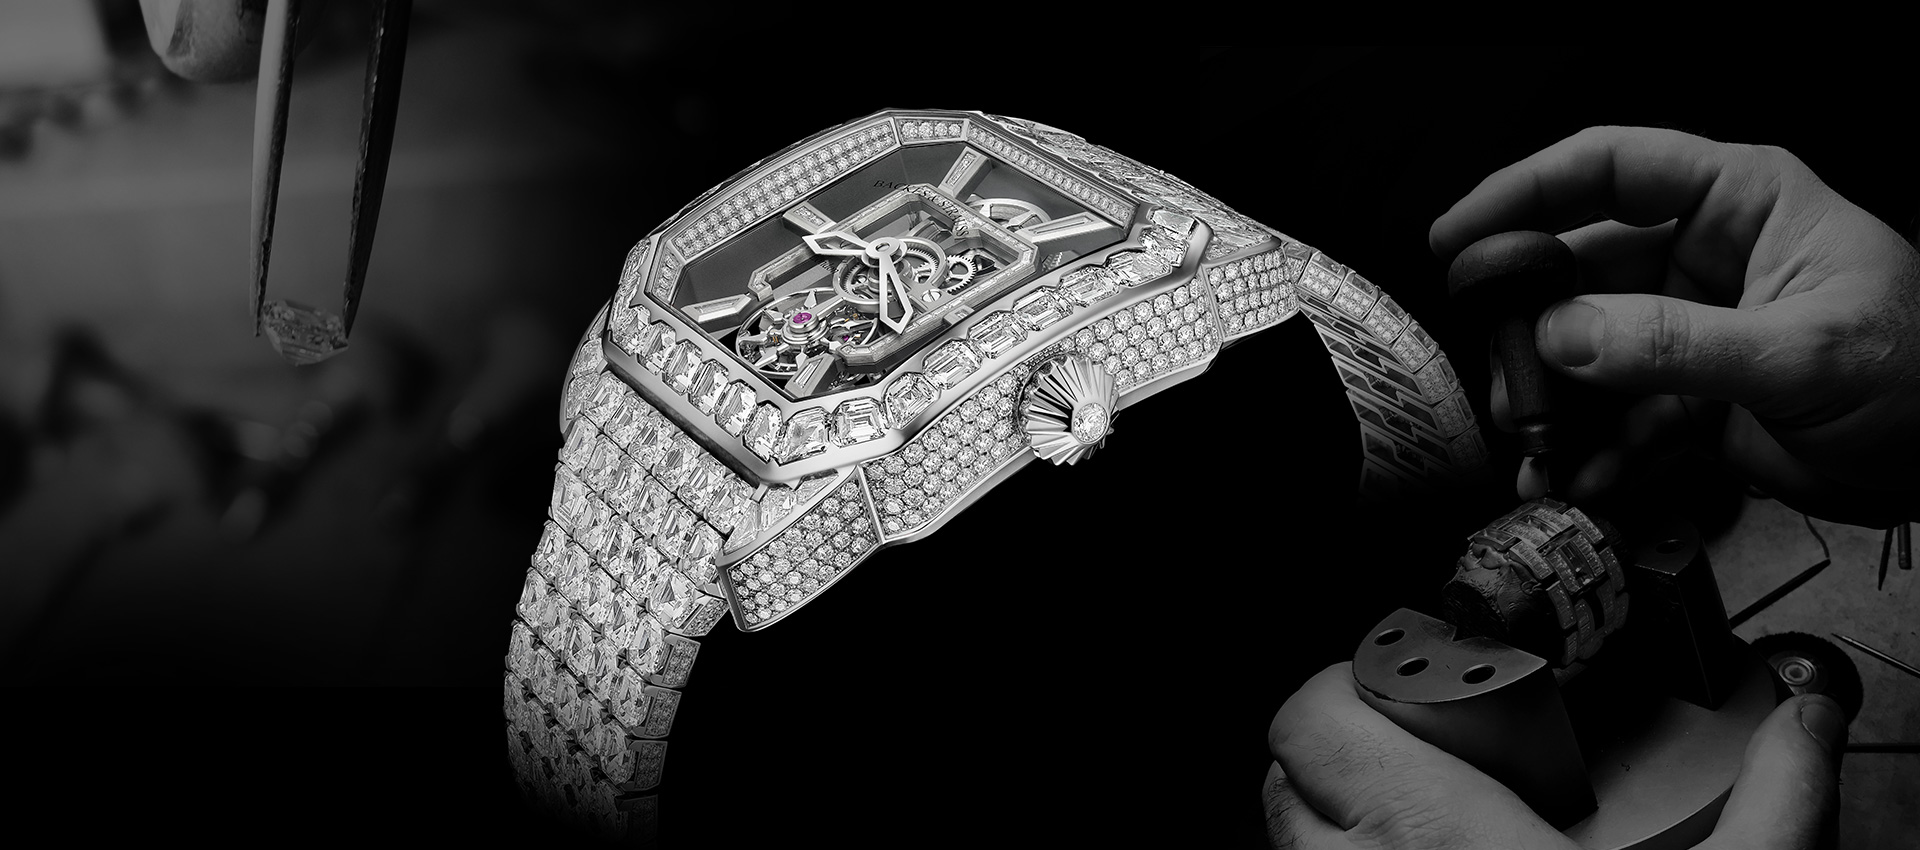 Royal Berkeley Emperor Tourbillon diamond encrusted watch